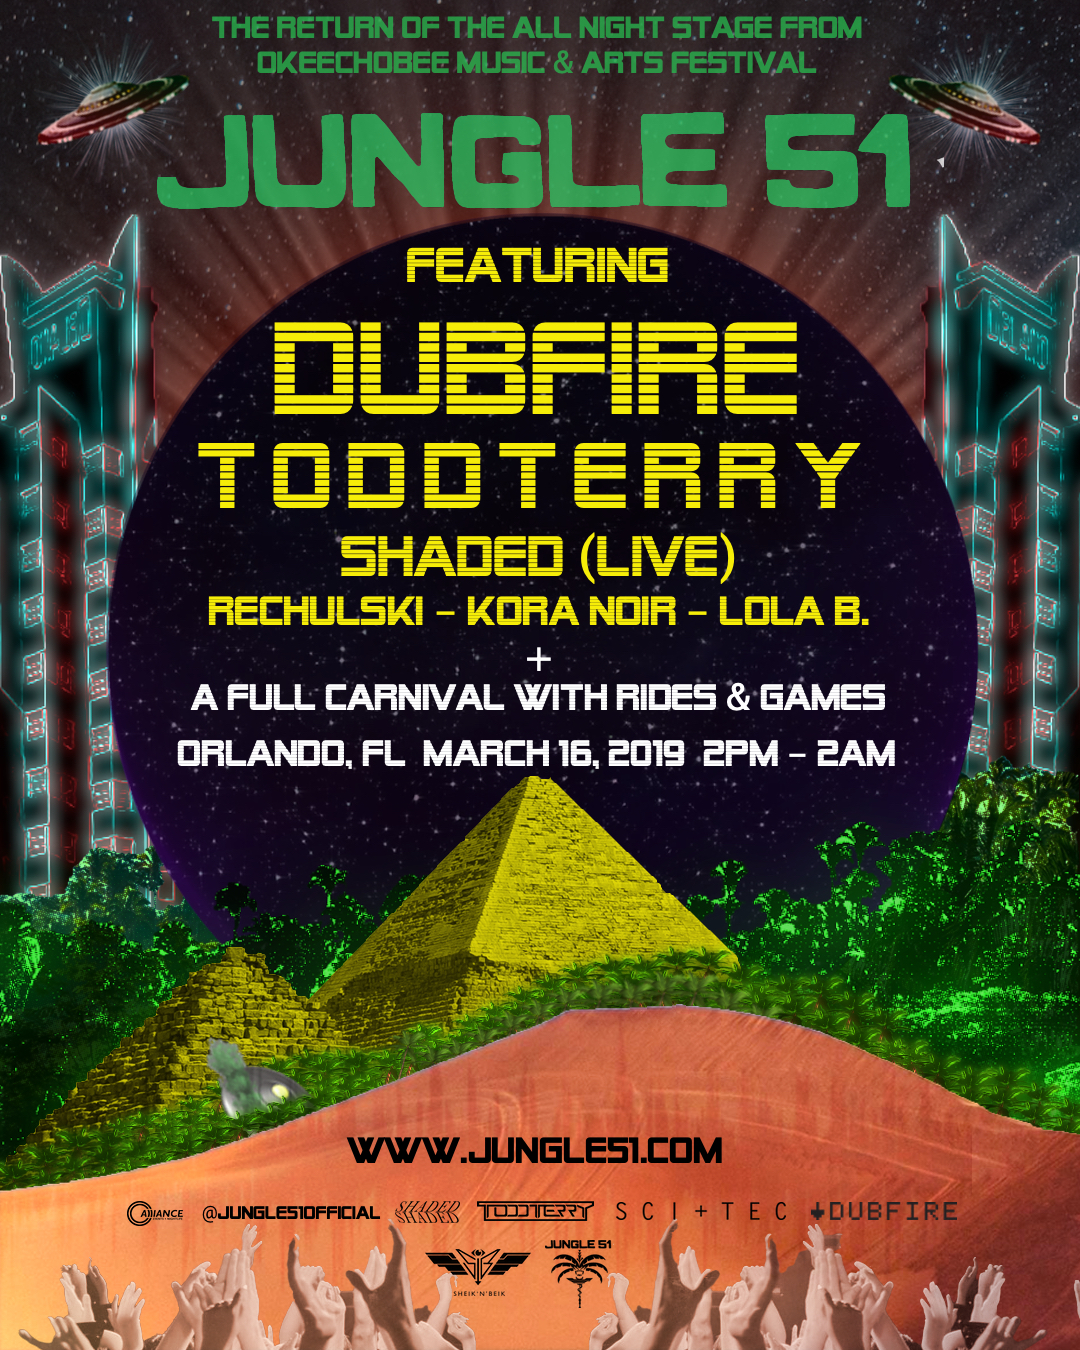 JUNGLE51 FLYER FINALFINAL.jpg